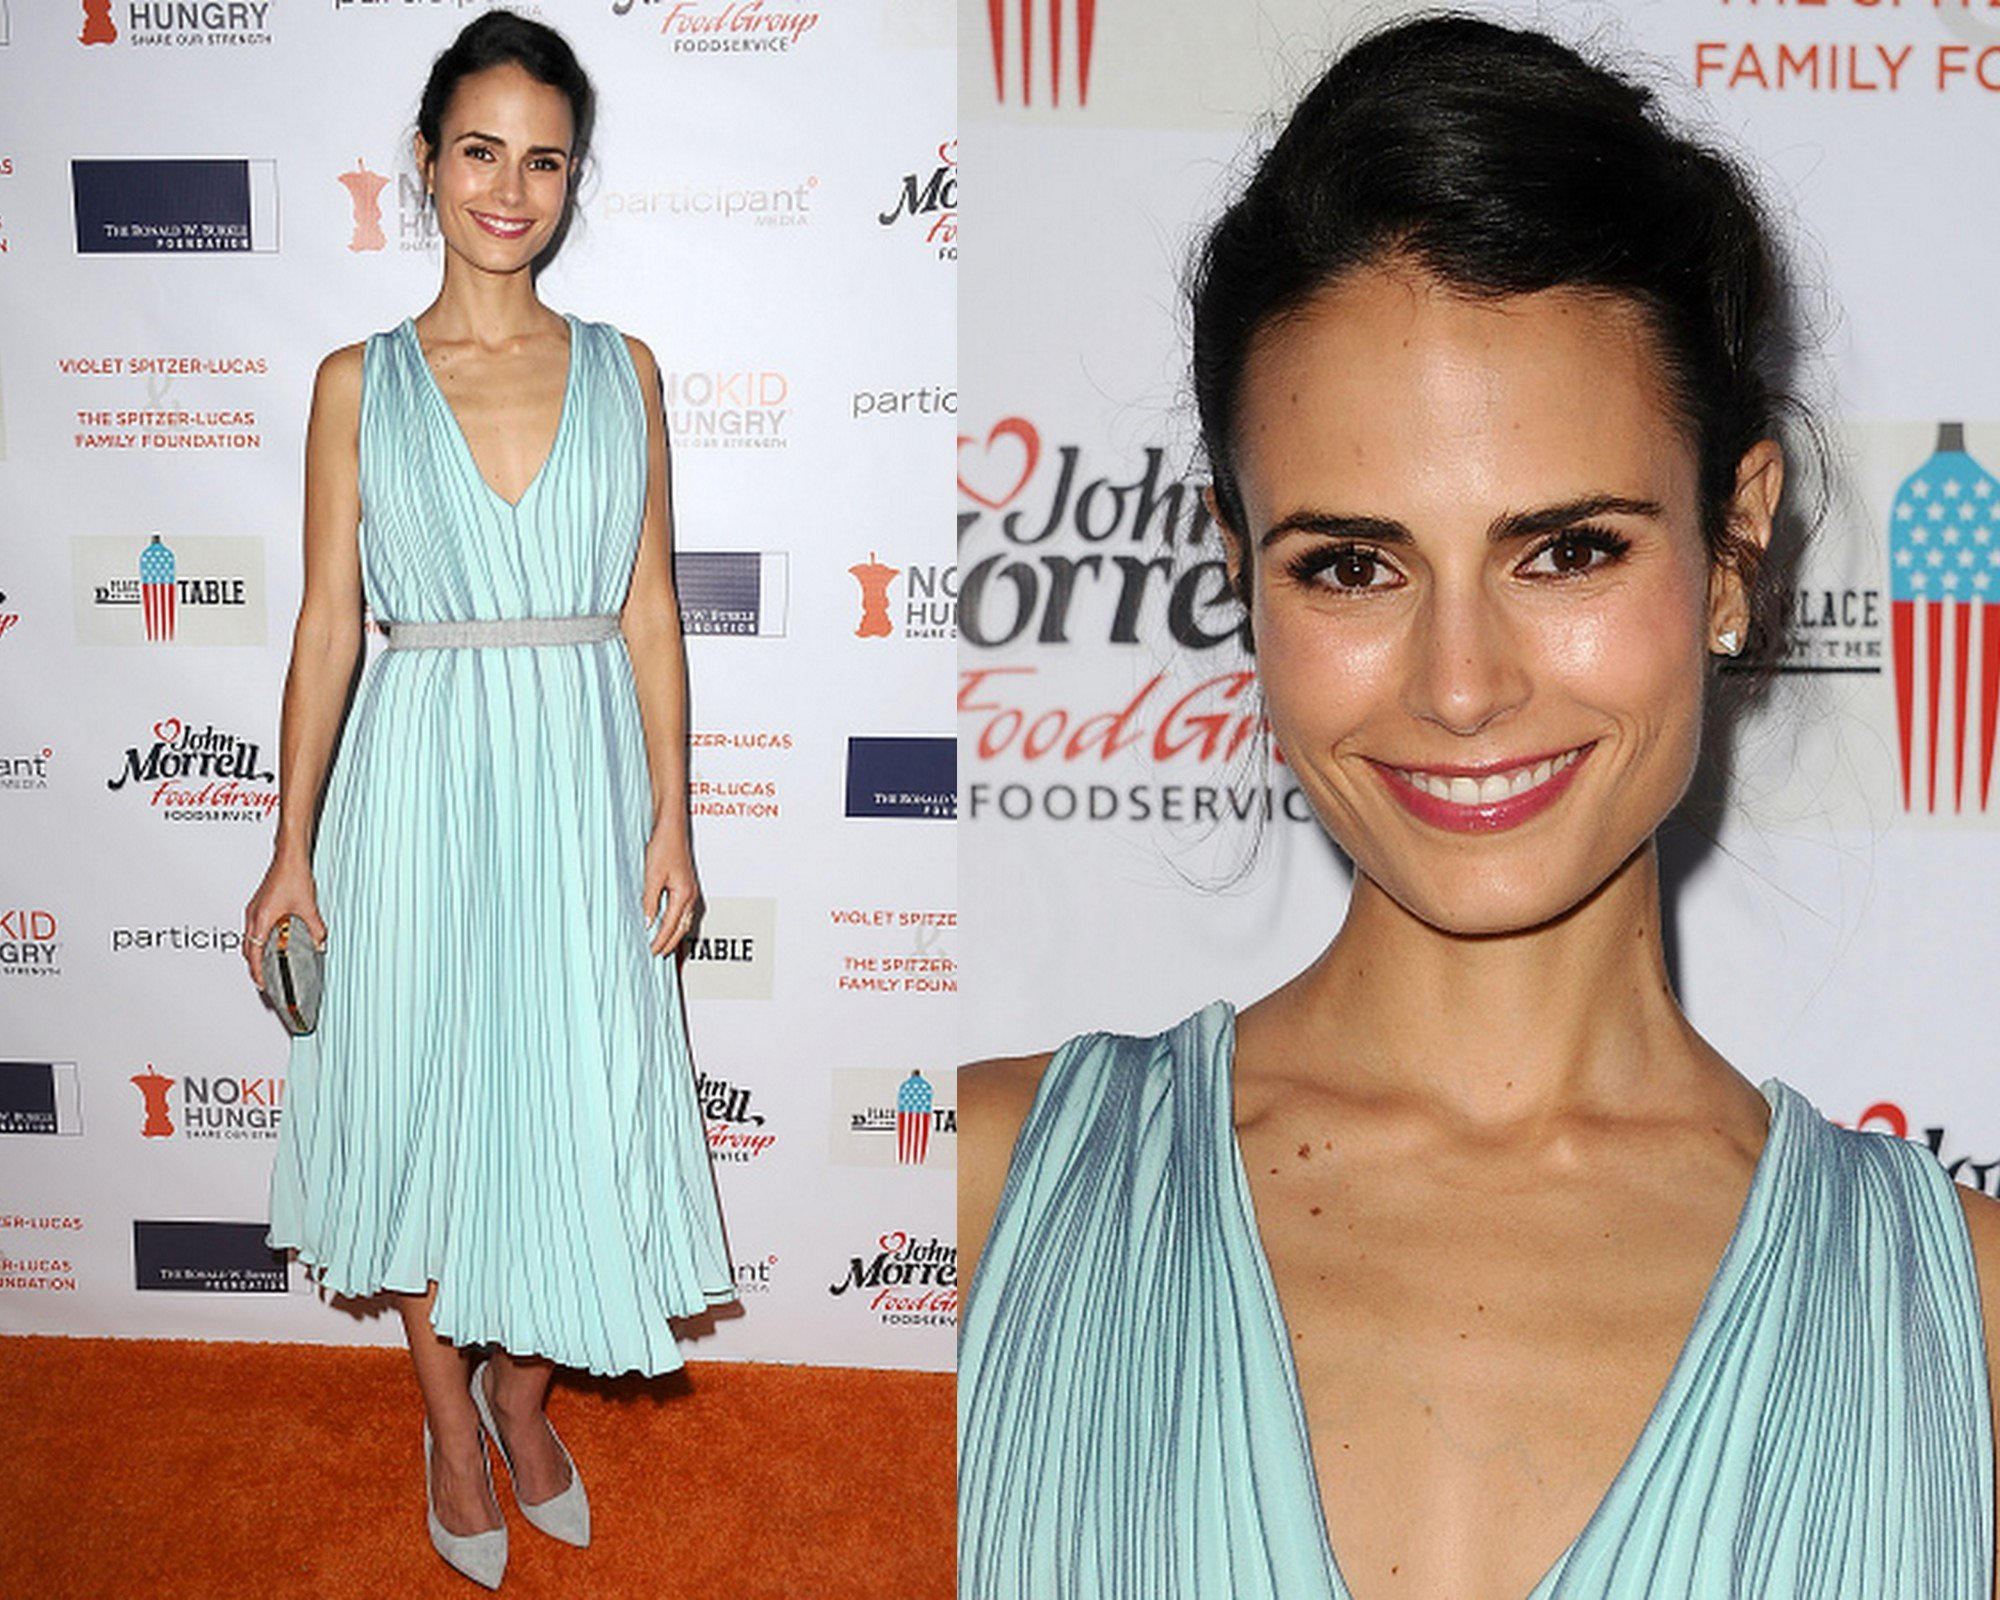 2000x1600xJordana-Brewster-Vionnet-Share-Our-Strengths-No-Kid-Hungry-Campaign-Fundraising-Dinner-e1414503419213.jpg.pagespeed.ic_.9FAlbAXUfT